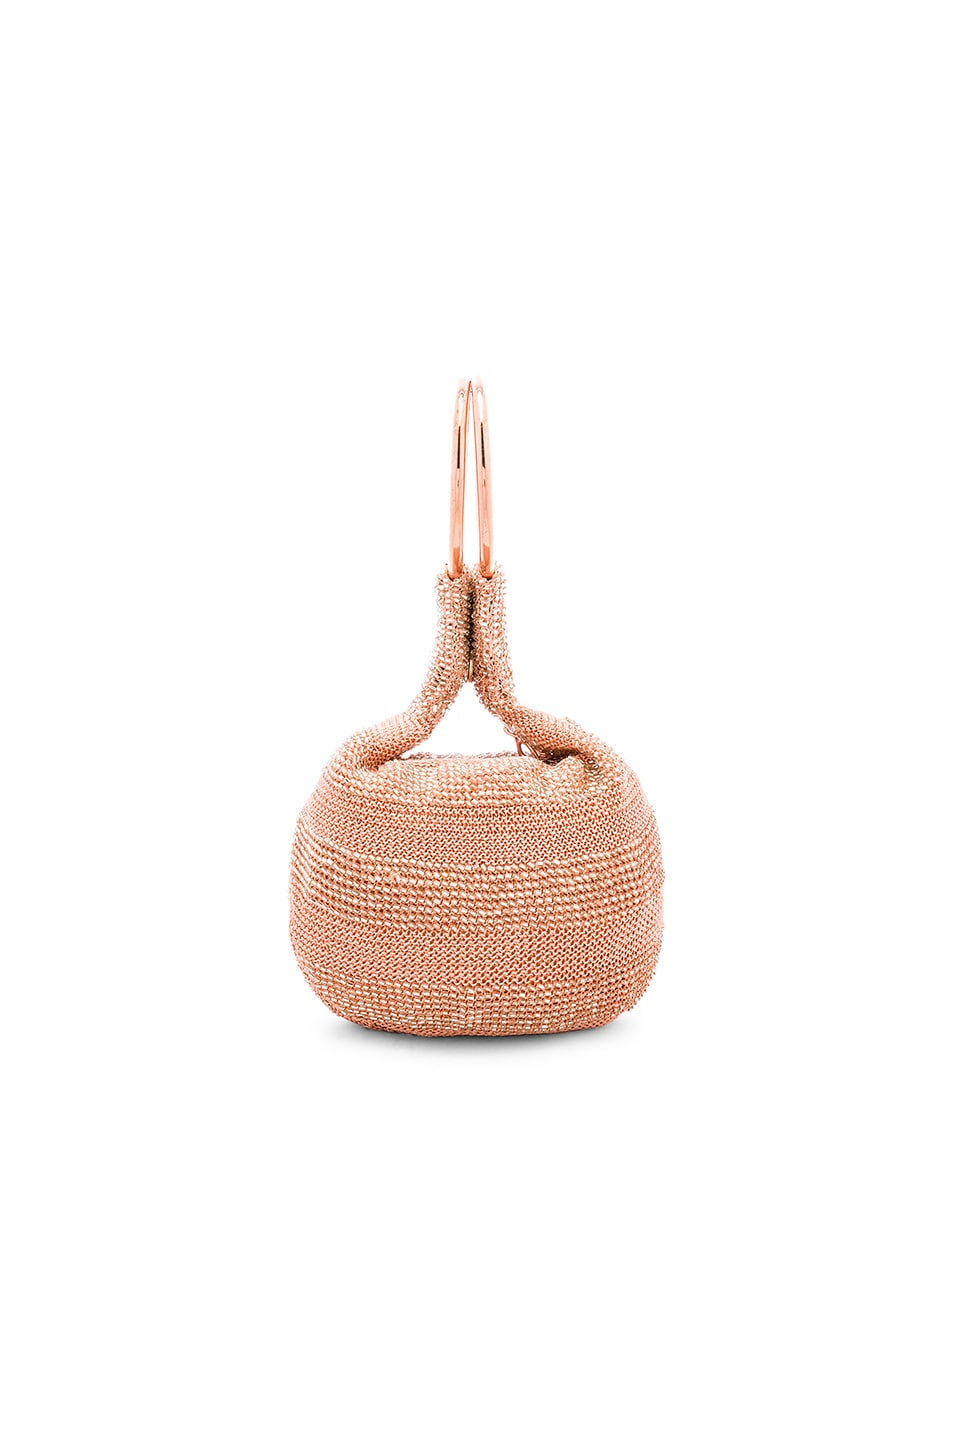 From St Xavier Goldie Bag in Rose Gold